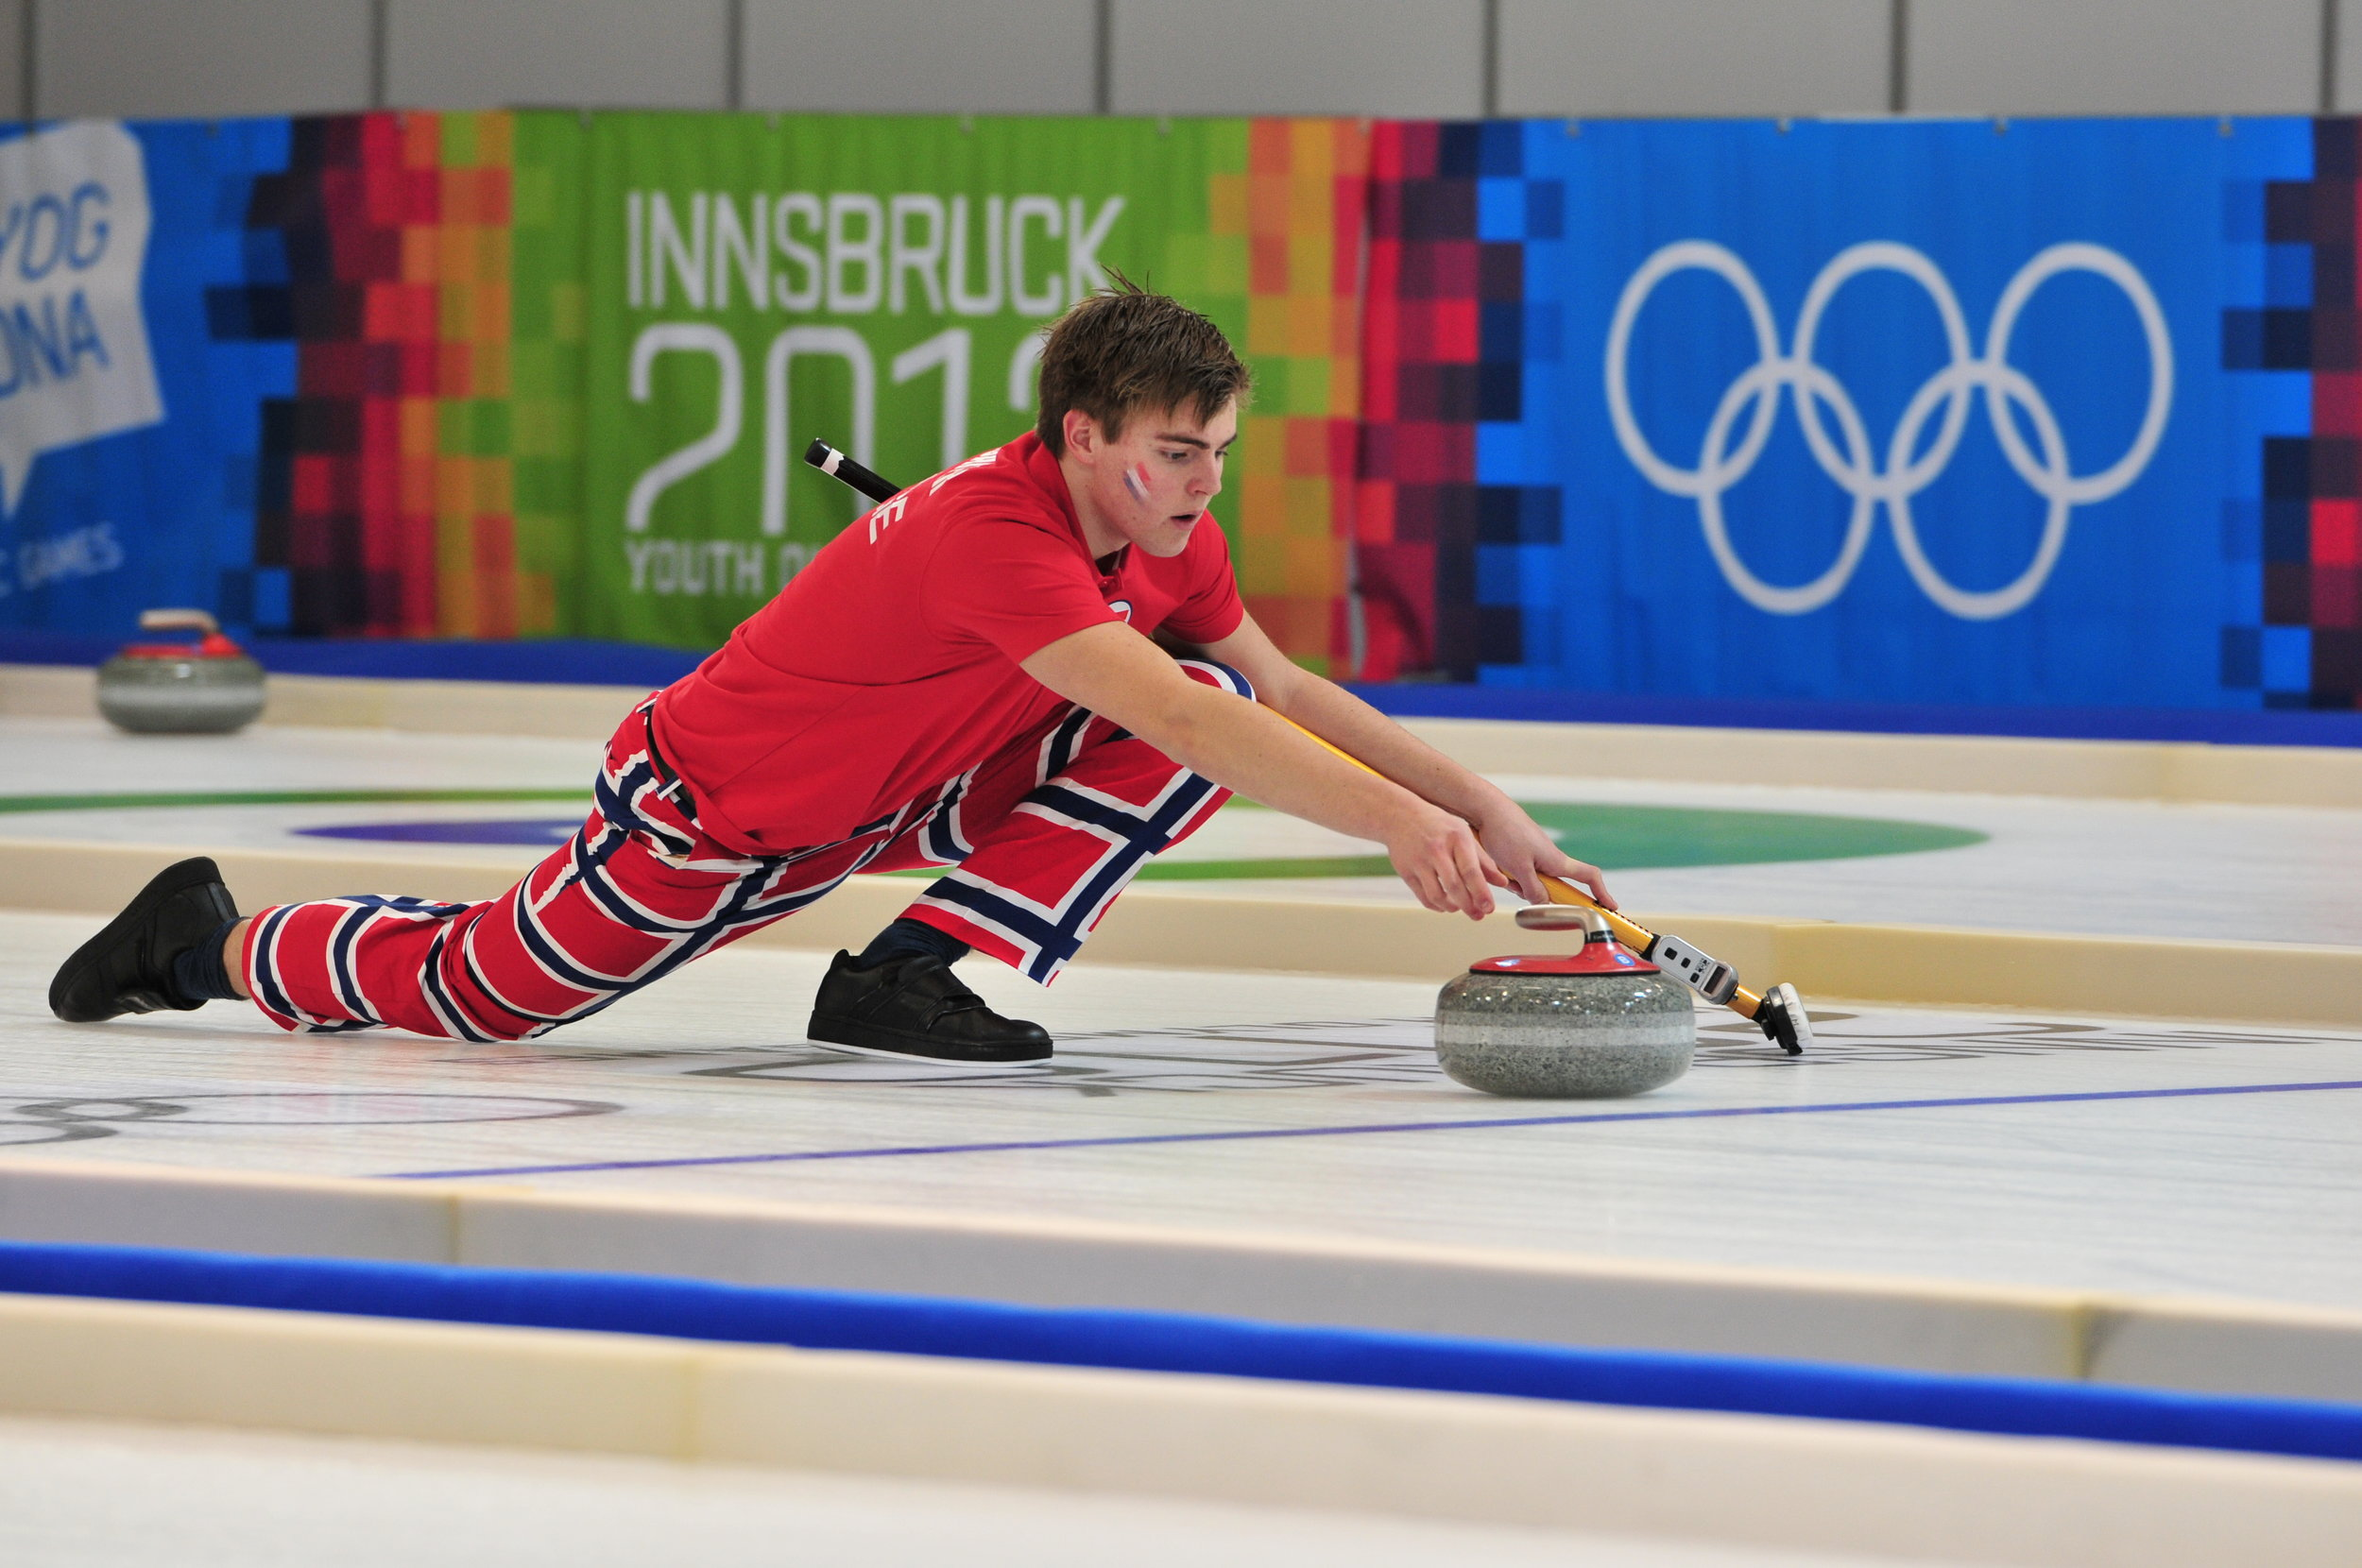 A curler at the 2012 Junior Olympics. Photo by Ralf Roletschek